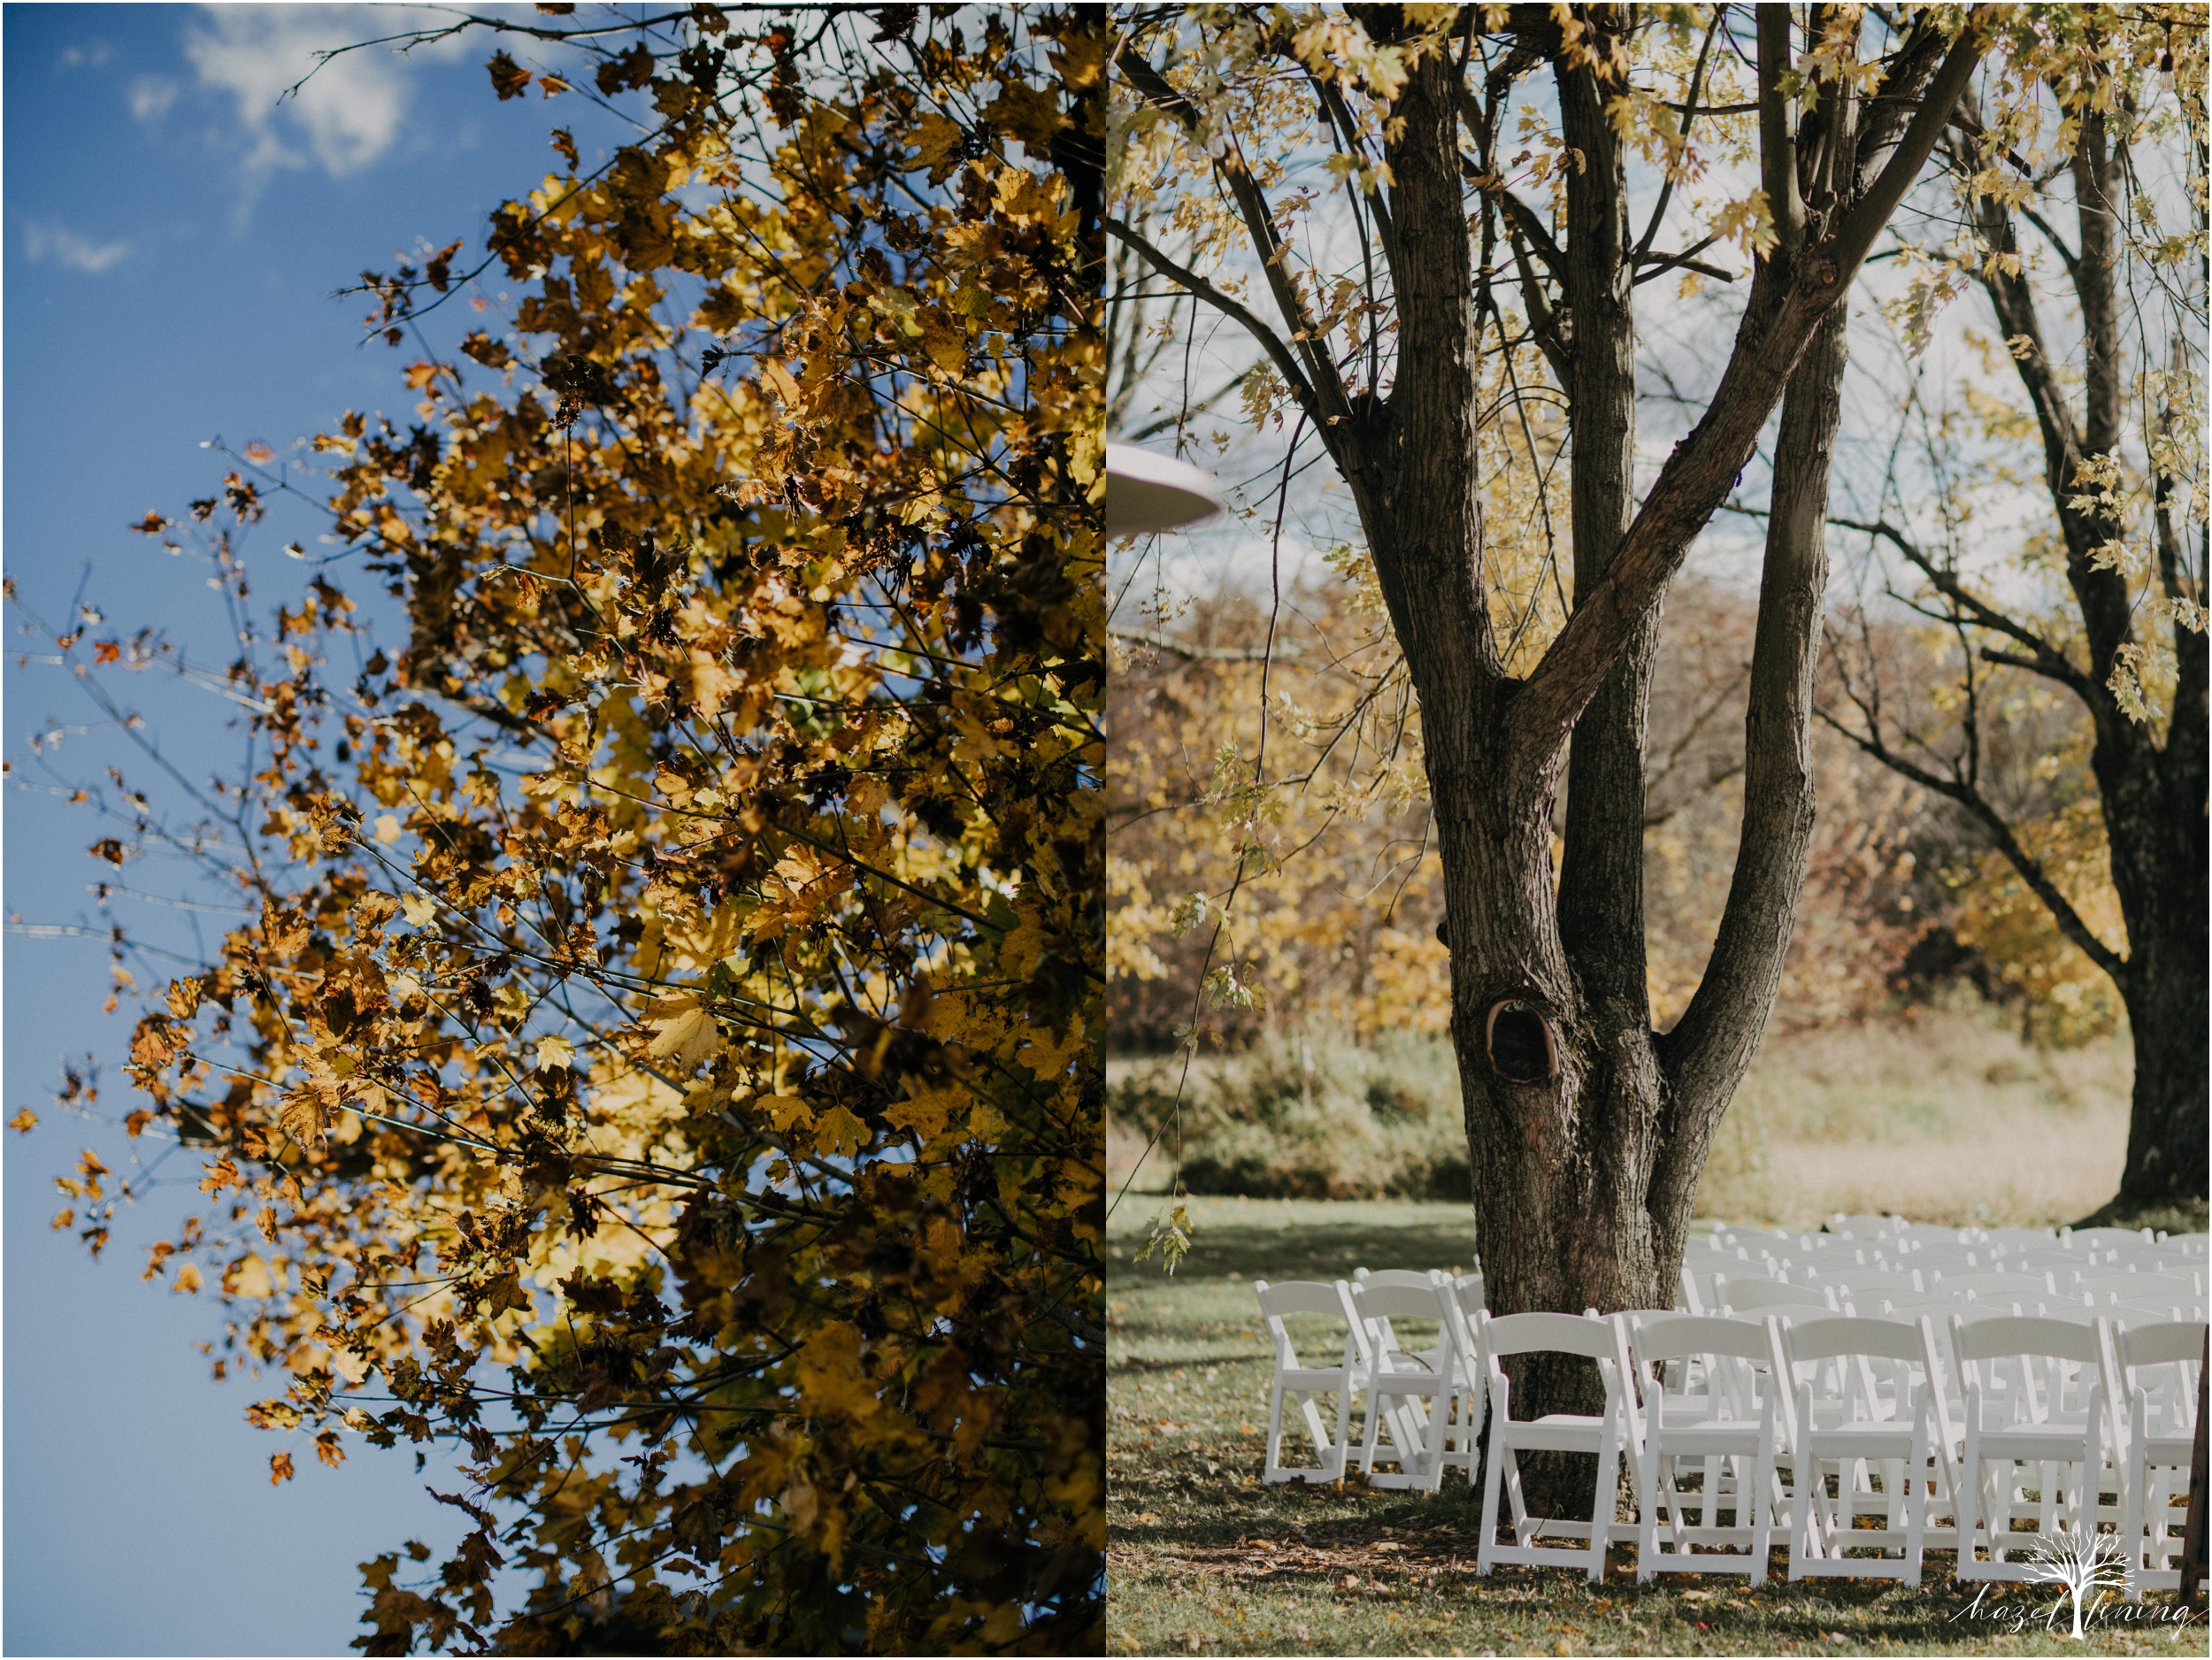 briana-krans-greg-johnston-farm-bakery-and-events-fall-wedding_0085.jpg